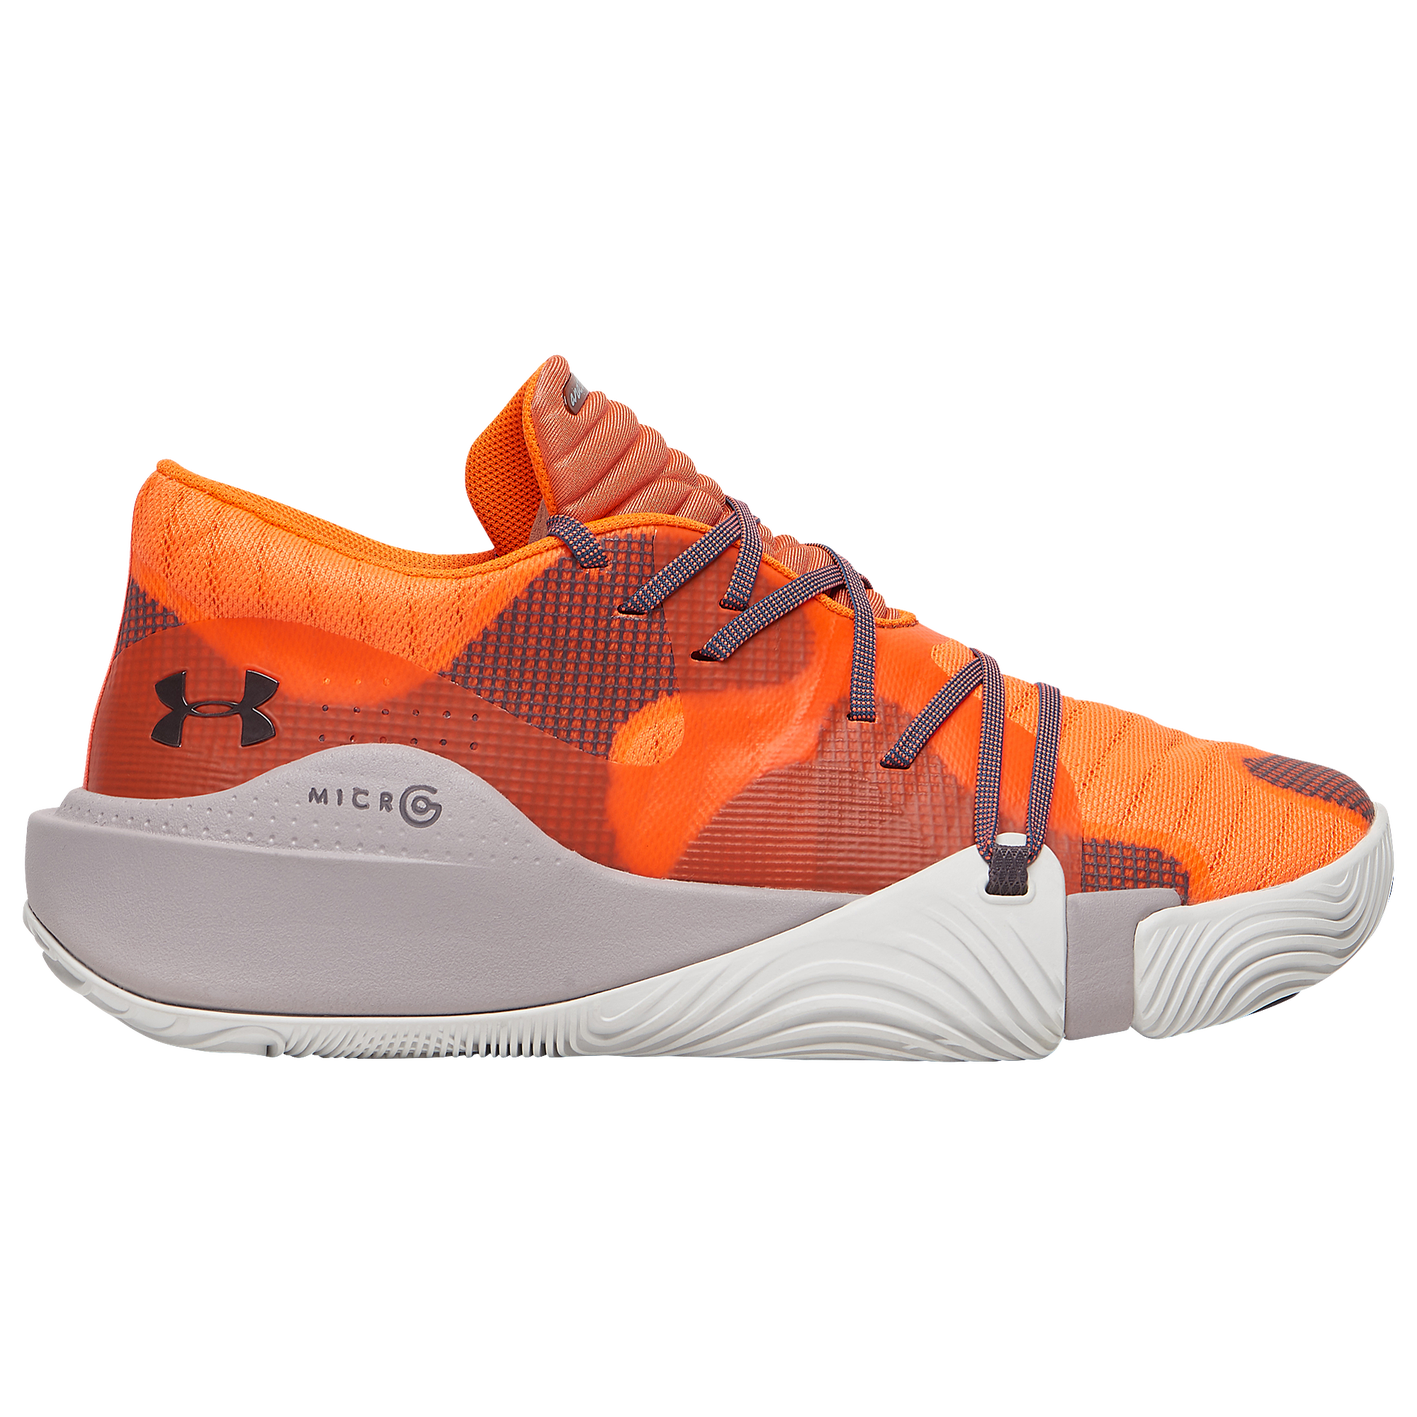 a7a044950 Under Armour Spawn Low - Men's - Basketball - Shoes - Orange Glitch ...